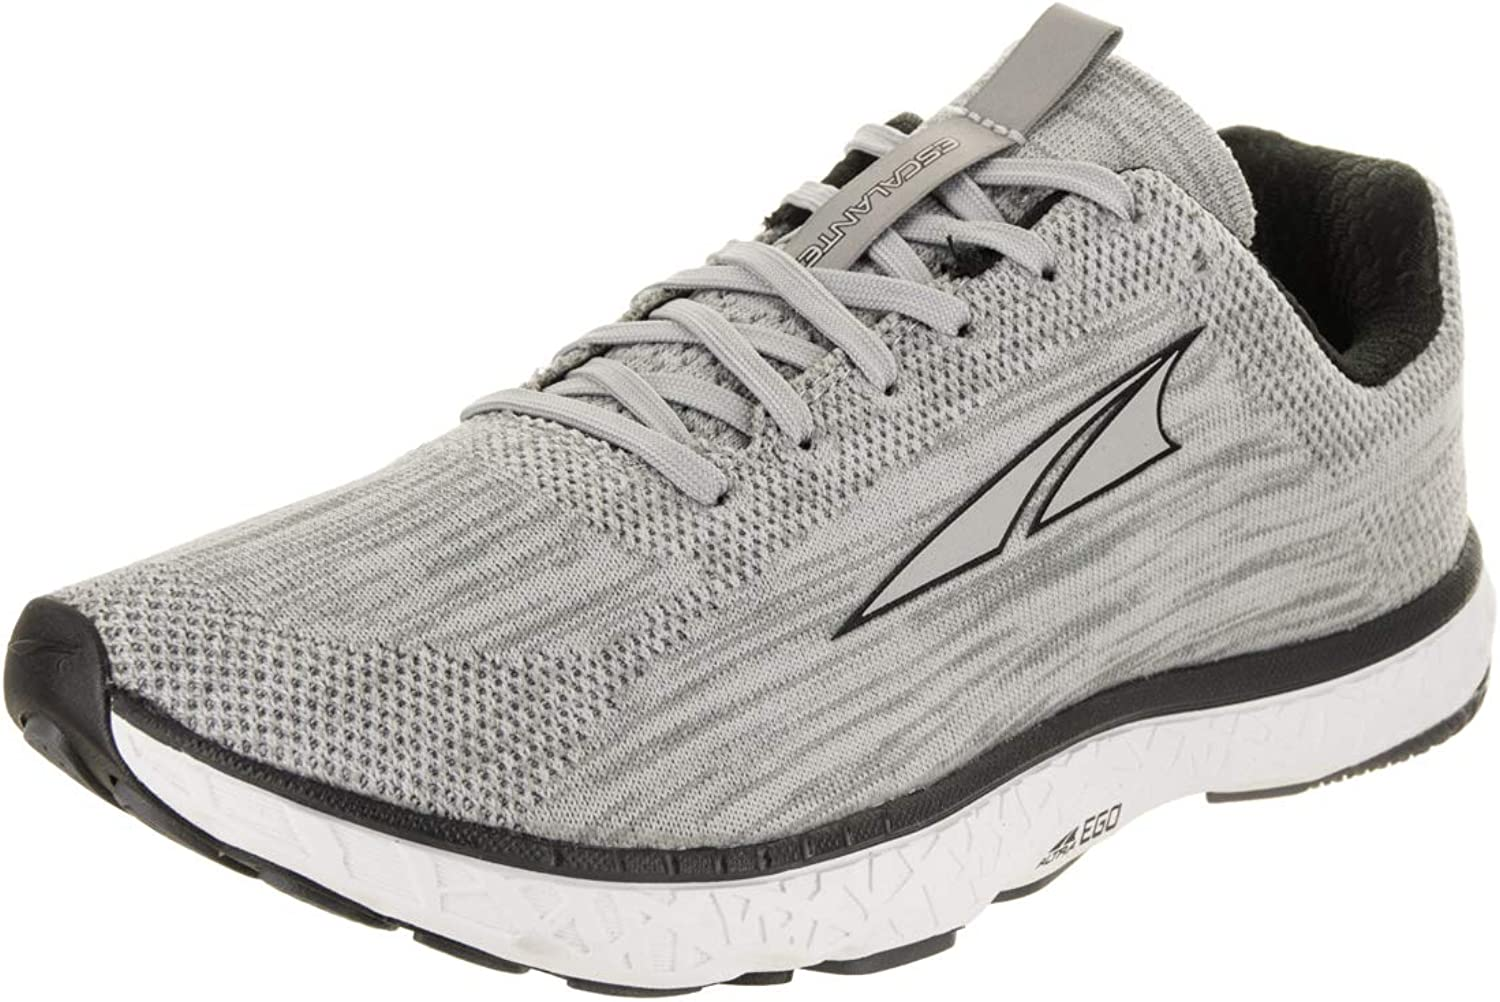 Altra Women's Escalante 1.5 Silver Running shoes 7.5 Women US